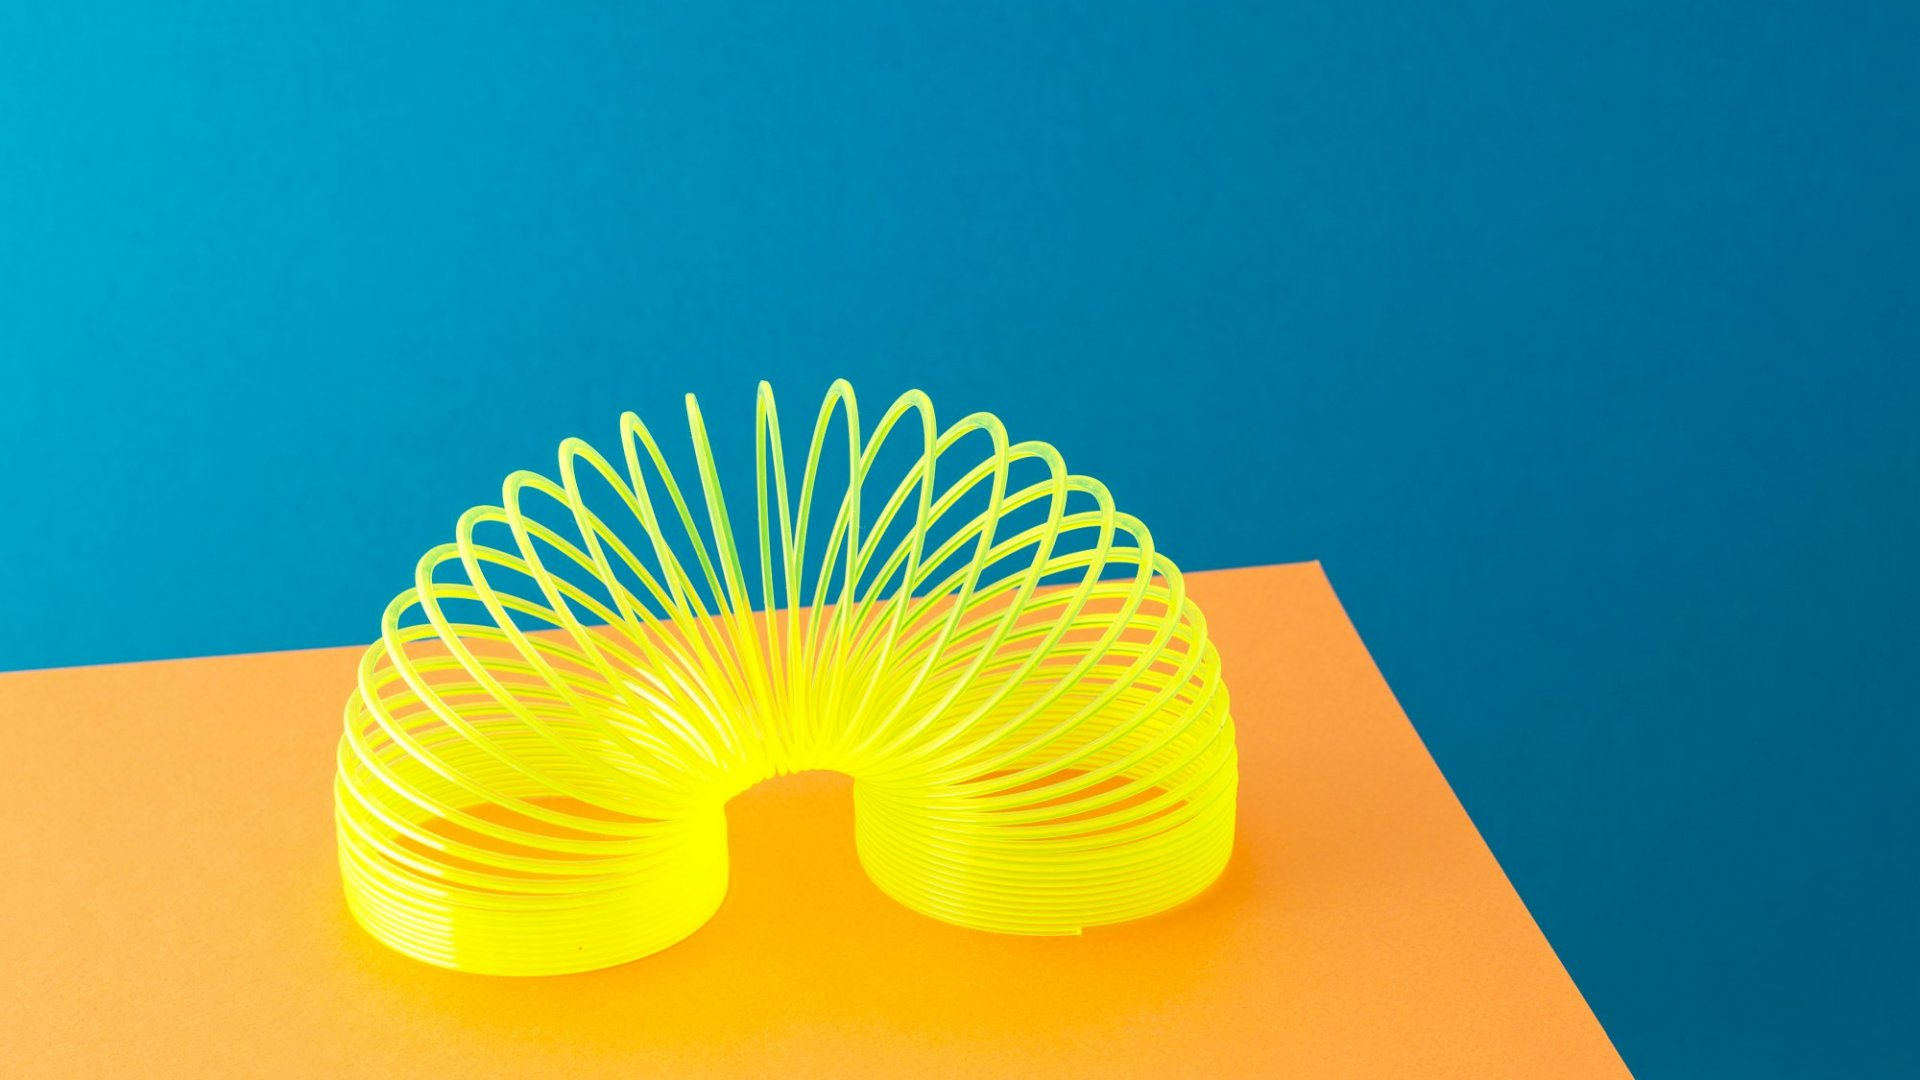 6 Odd Facts About Slinky that Explain Its Enduring Success